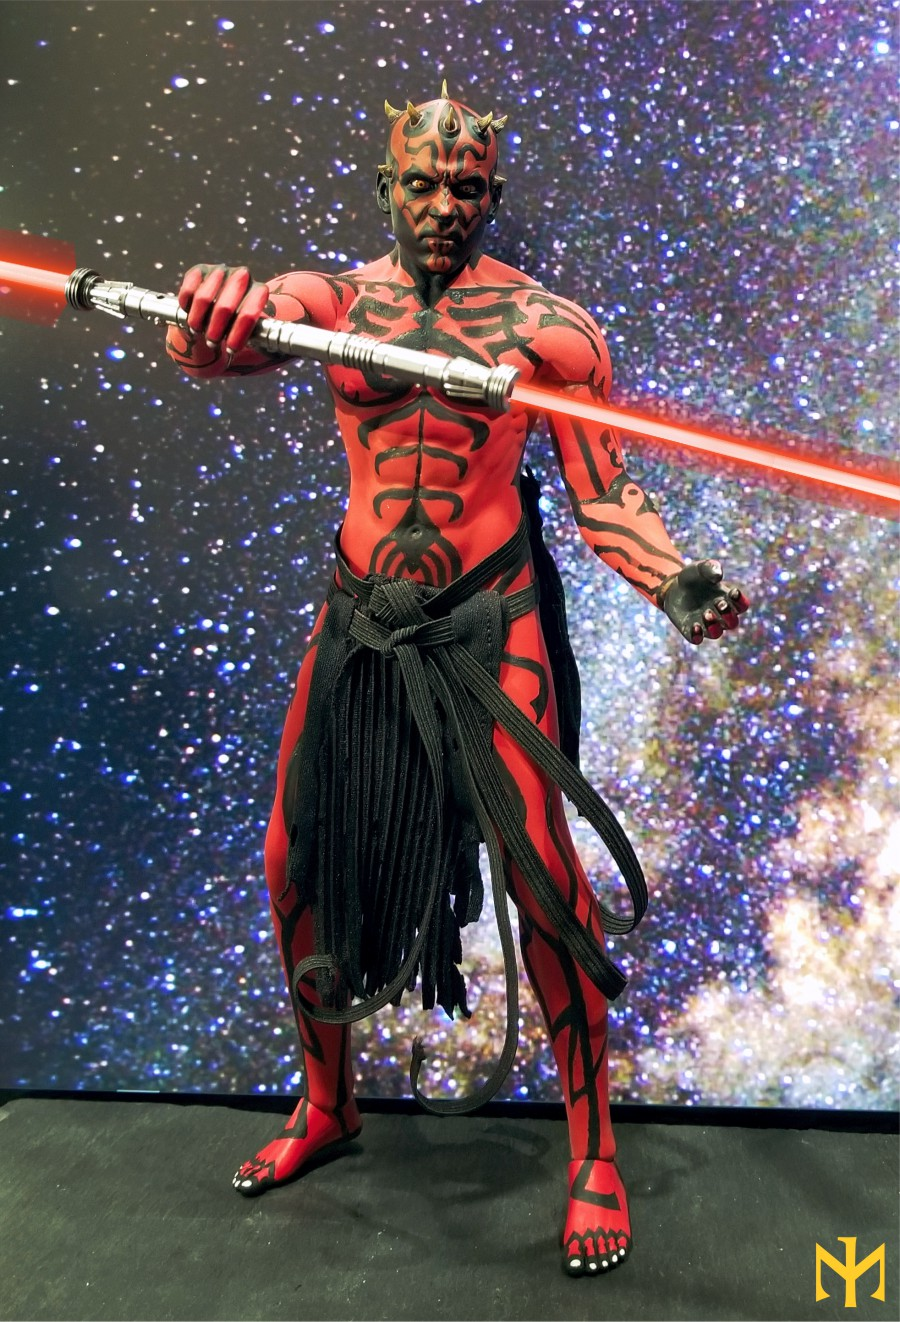 STAR WARS Updated Darth Maul Custom Part IV Maul 2.0 (photo heavy) Swdmt226